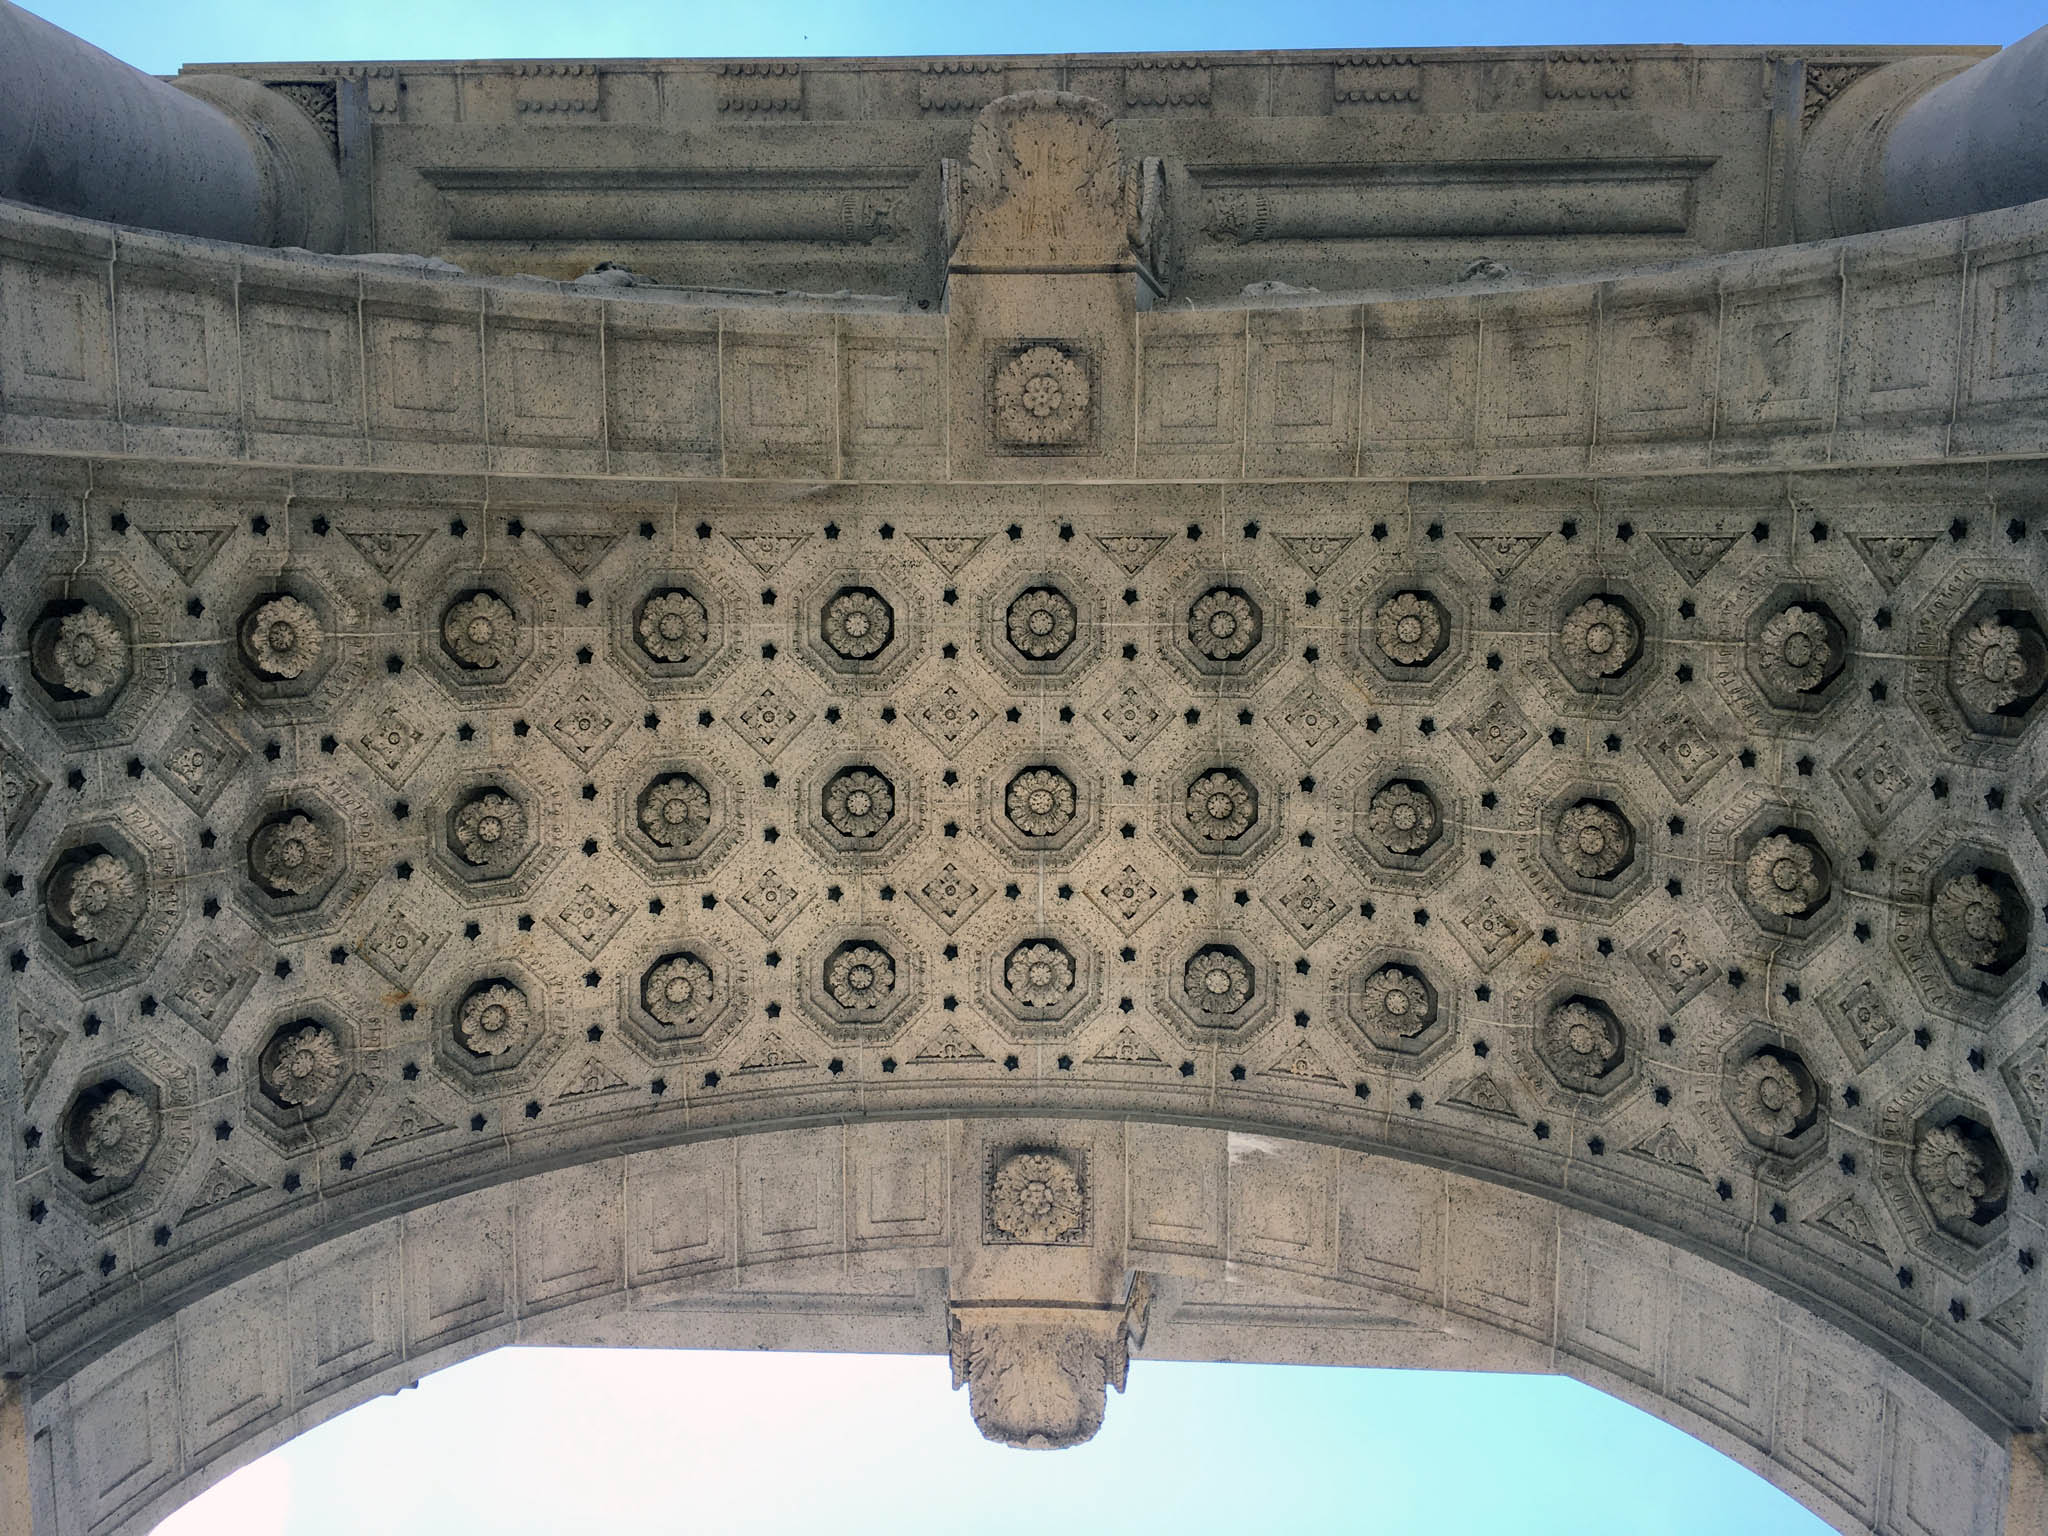 Fine ornamental detail underneath the National Memorial Arch.